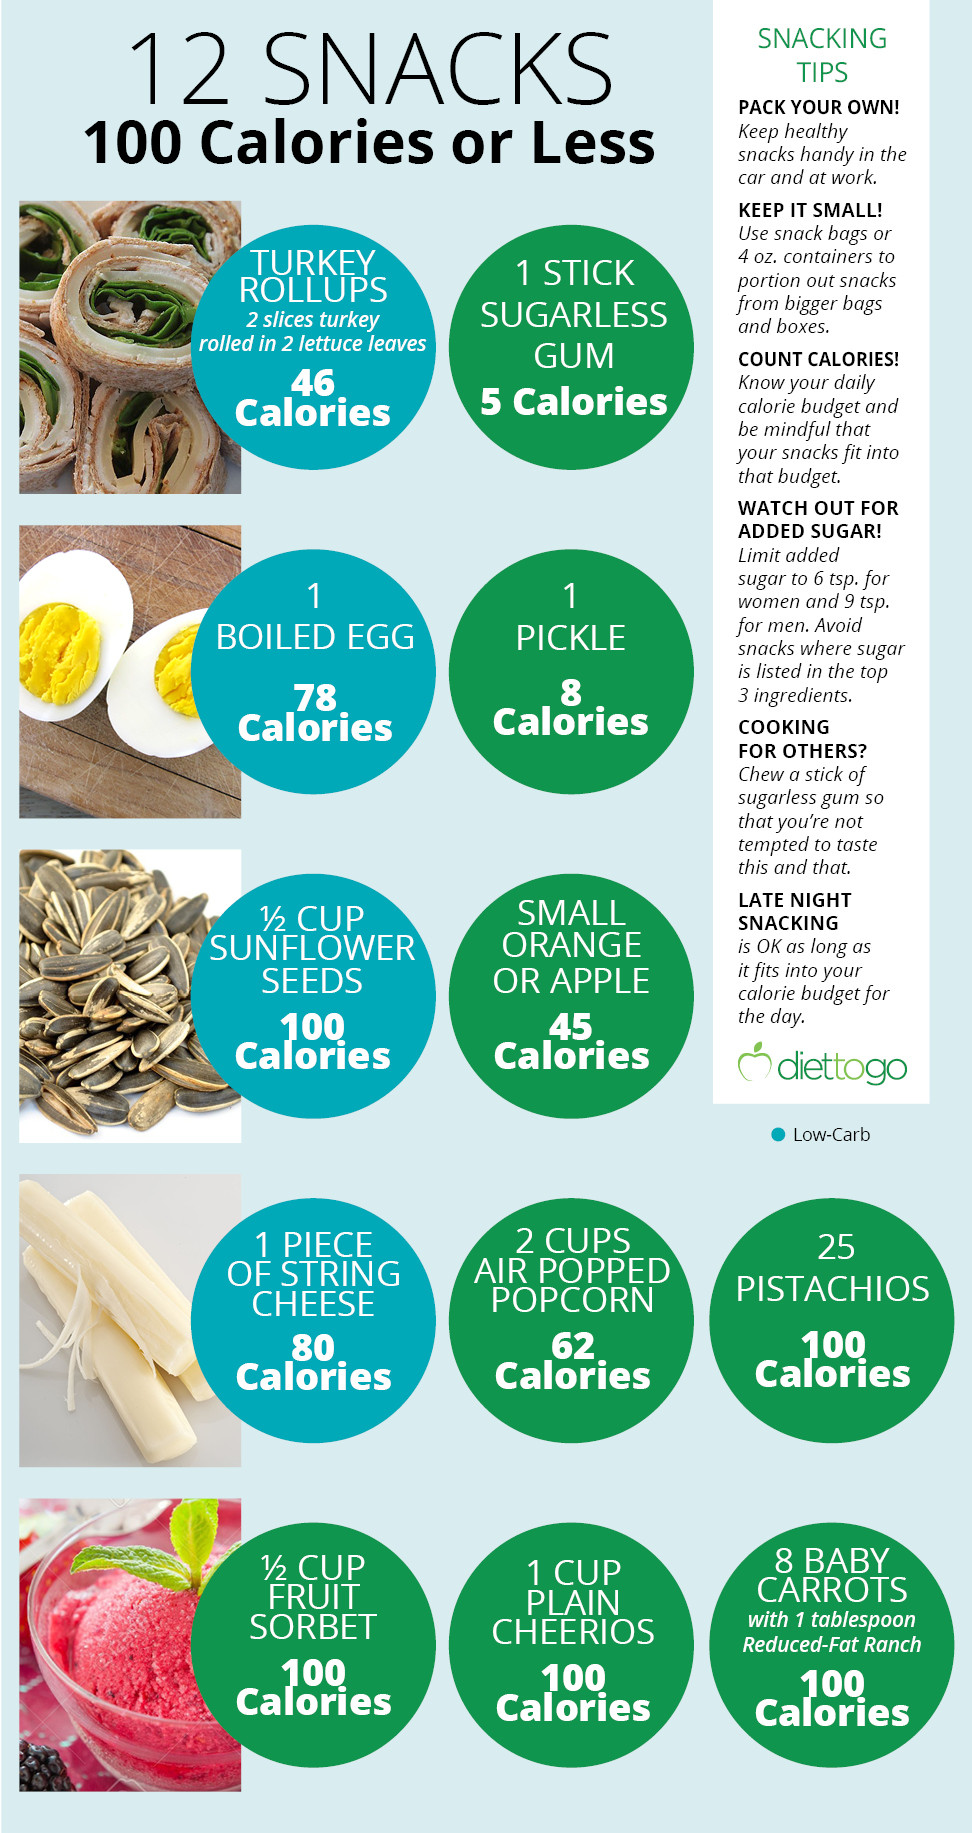 Healthy 100 Calorie Snacks  12 Healthy Snacks for 100 Calories or Less